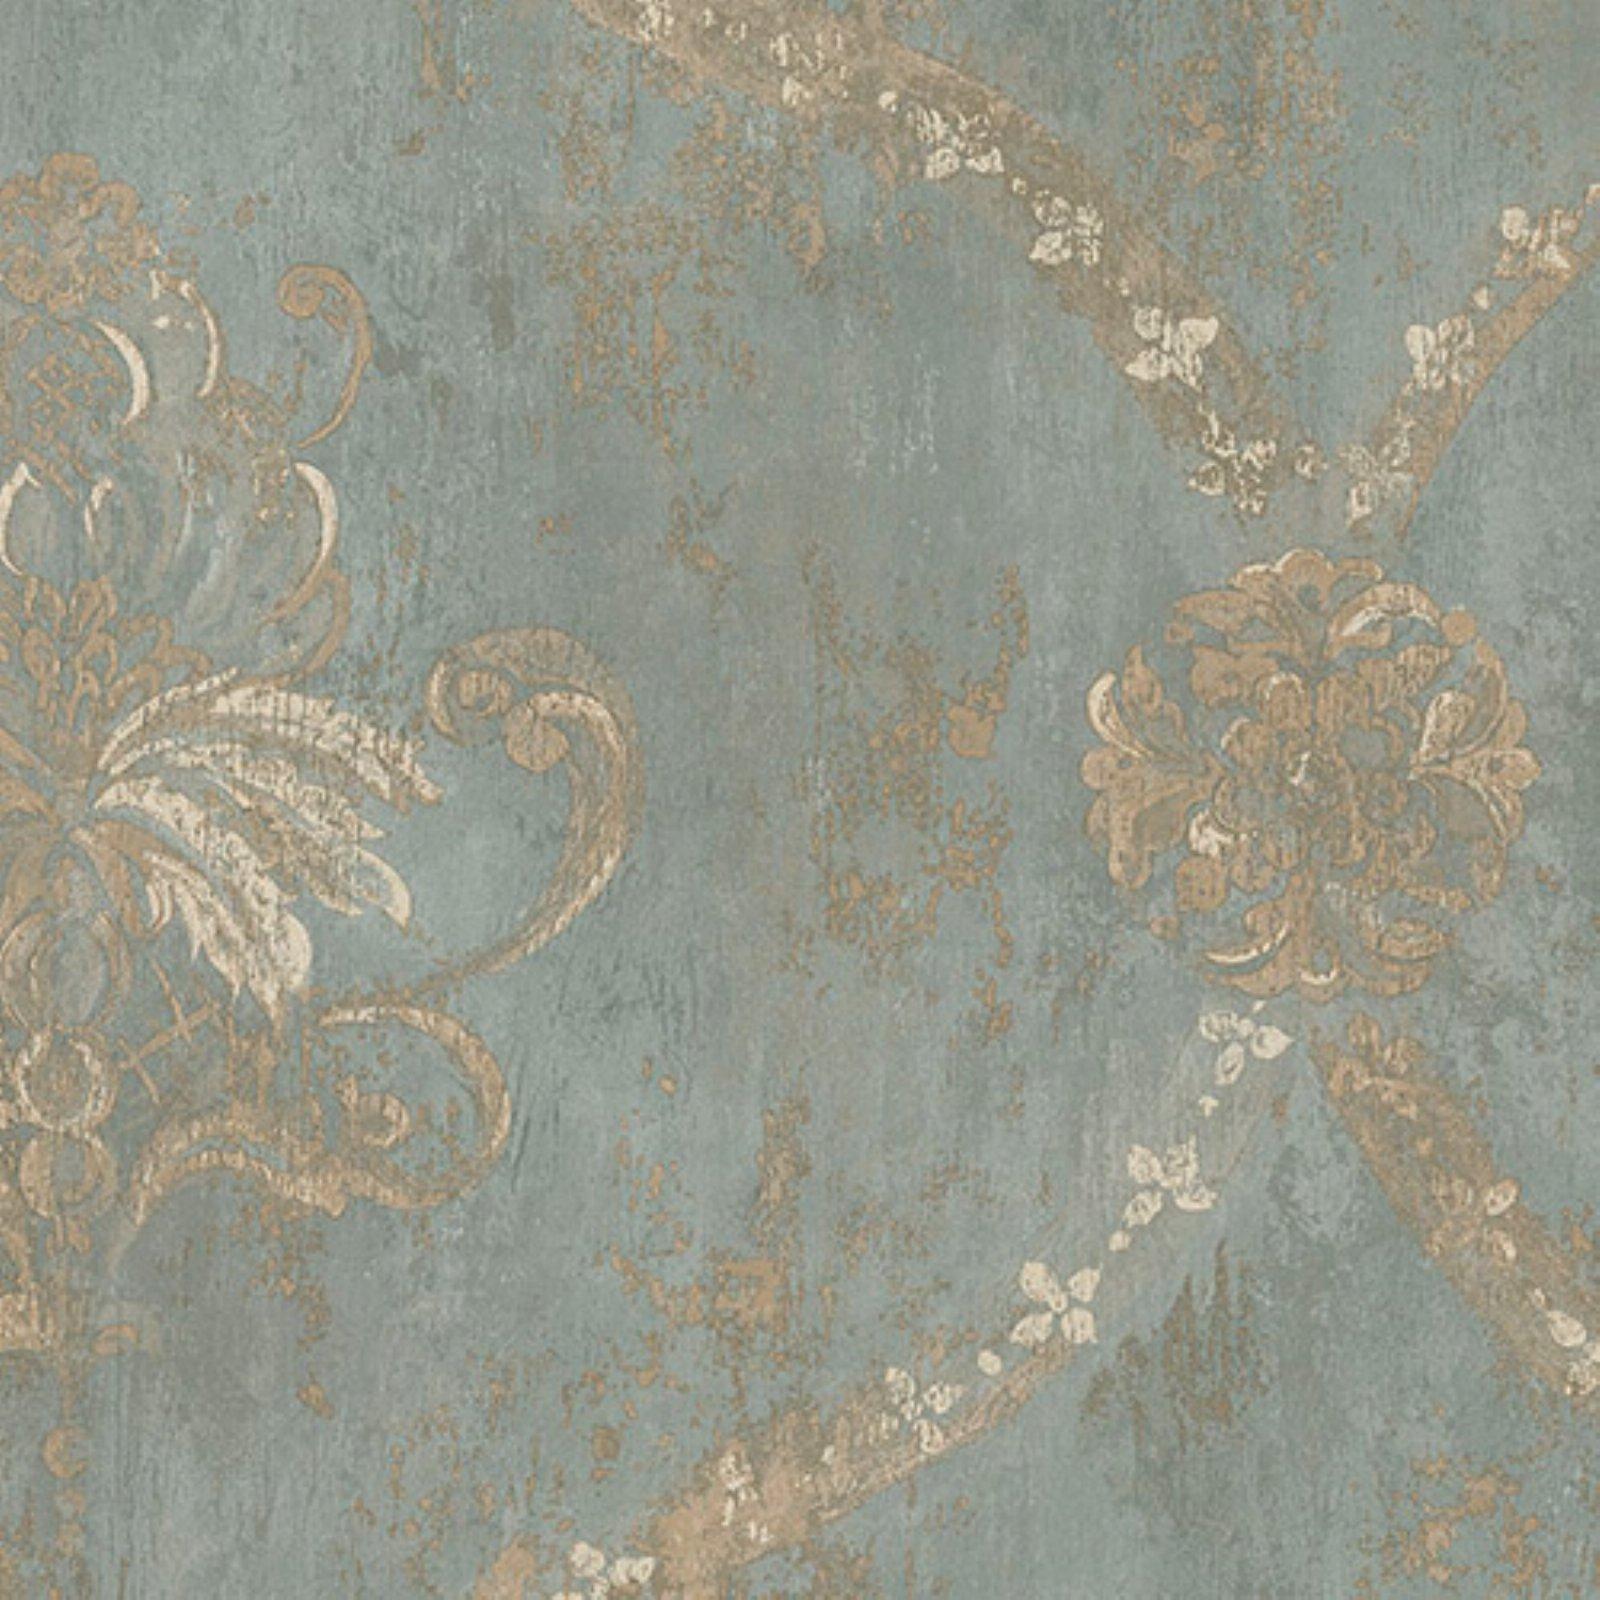 Turquoise Accent Wall Modern Lobby: Manhattan Comfort Noah Regal Damask Wallpaper Metallic